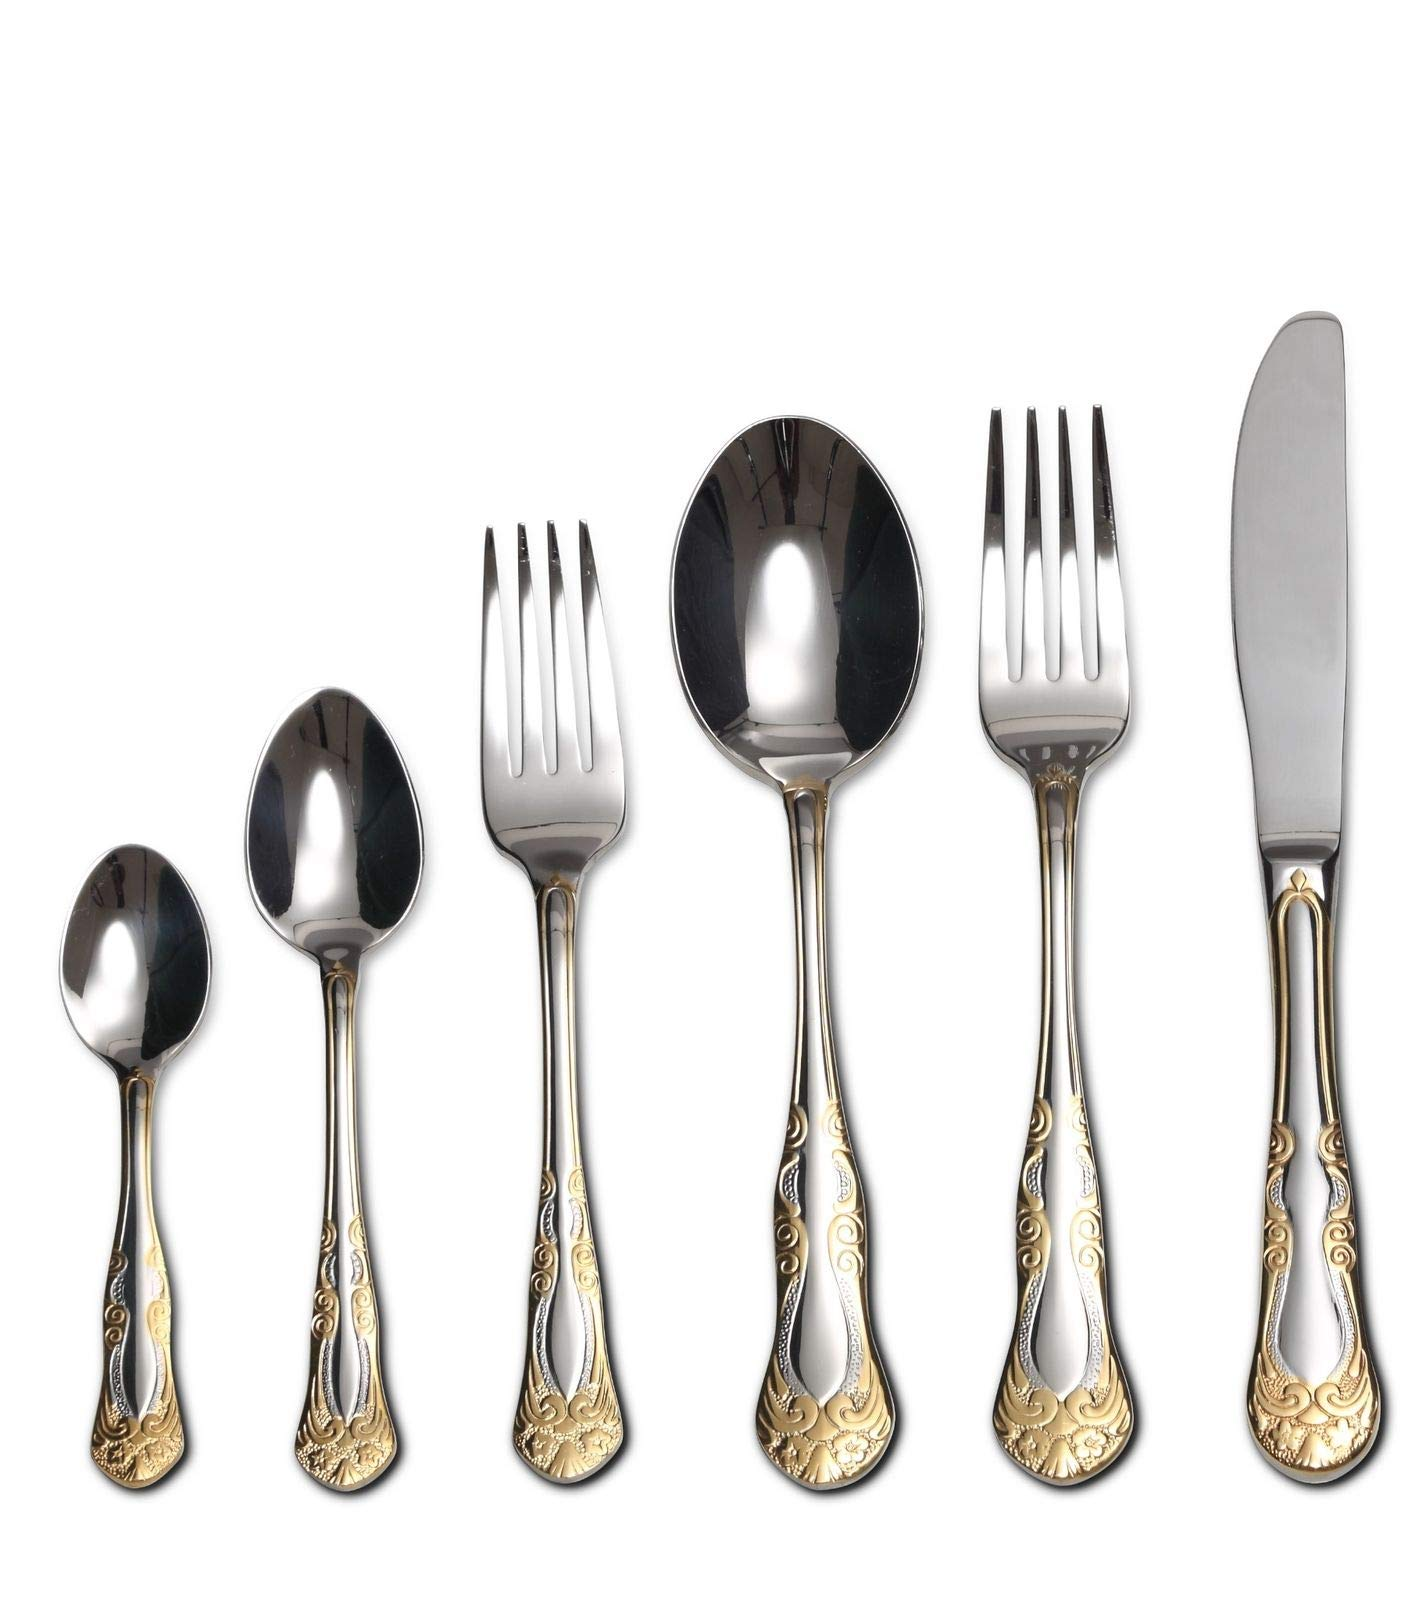 75-Piece Gold Flatware Set Dining Service for 12, 18/10 Premium Stainless Steel, 24K Gold-Plated Trim, Silverware Serving Set, Wood Storage Case (''Majestic'')